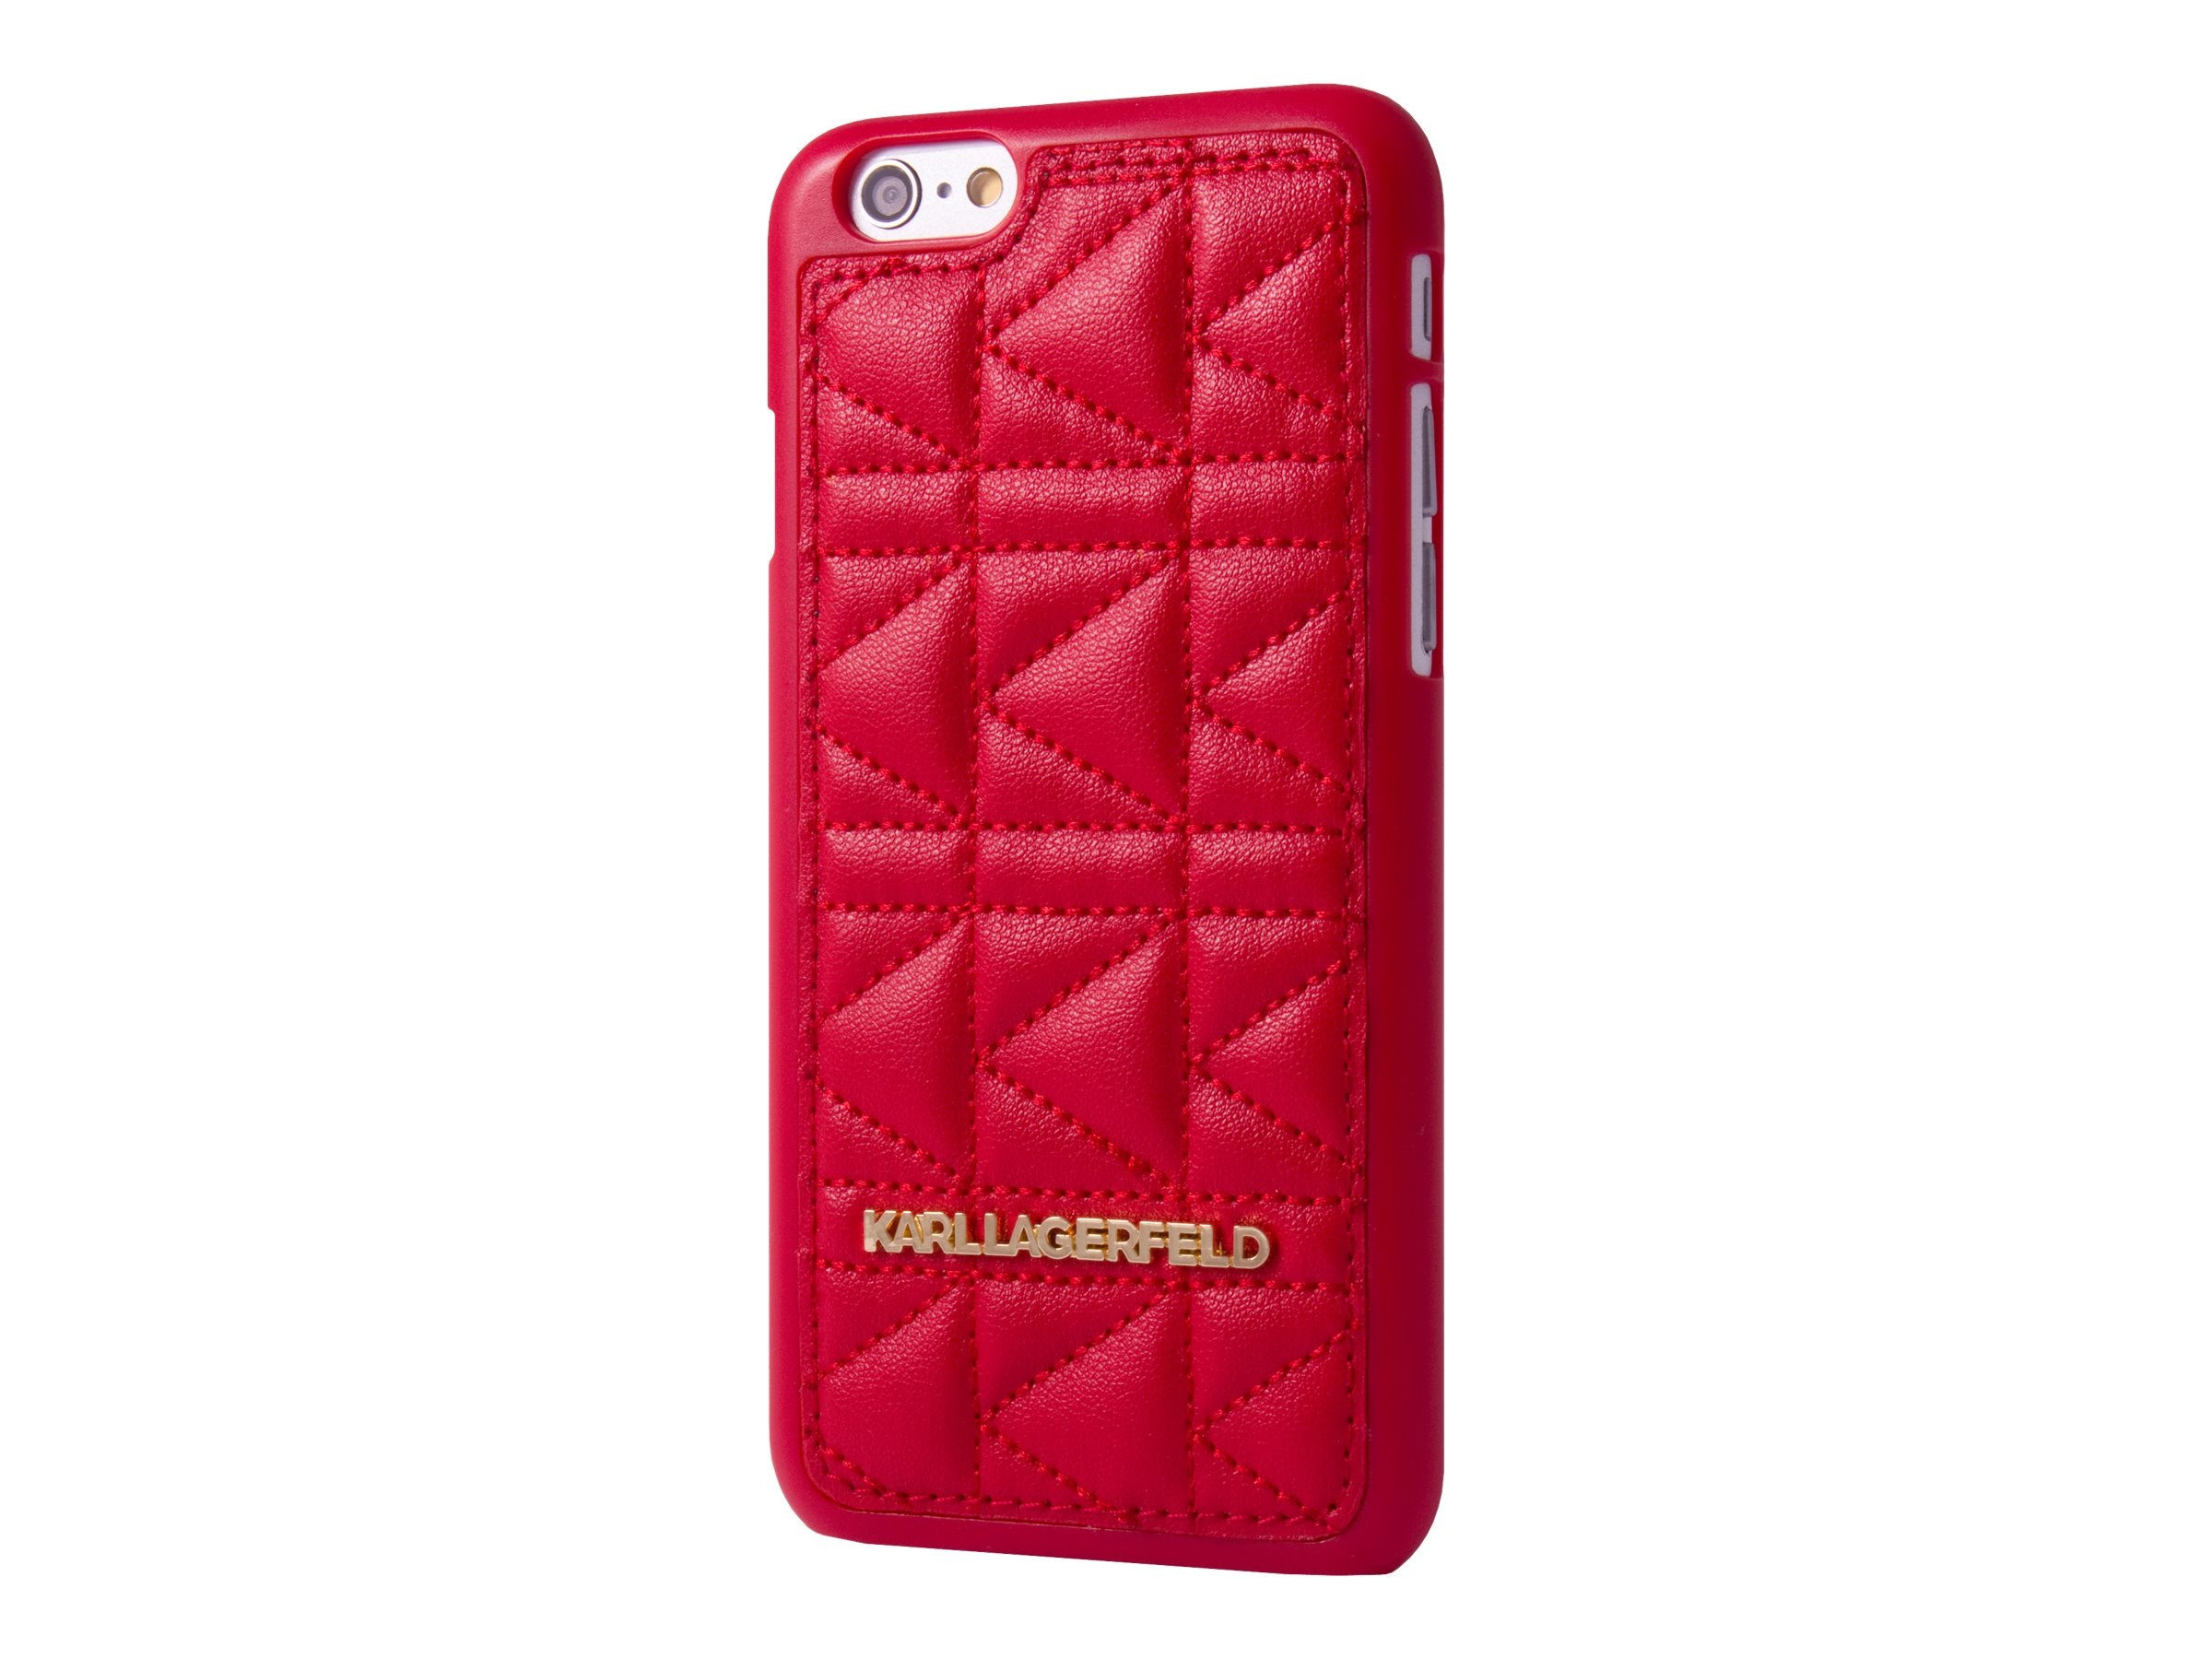 KARL LAGERFELD KUILTED - Coque de protection pour pour iPhone 6 Plus - cuir - rouge